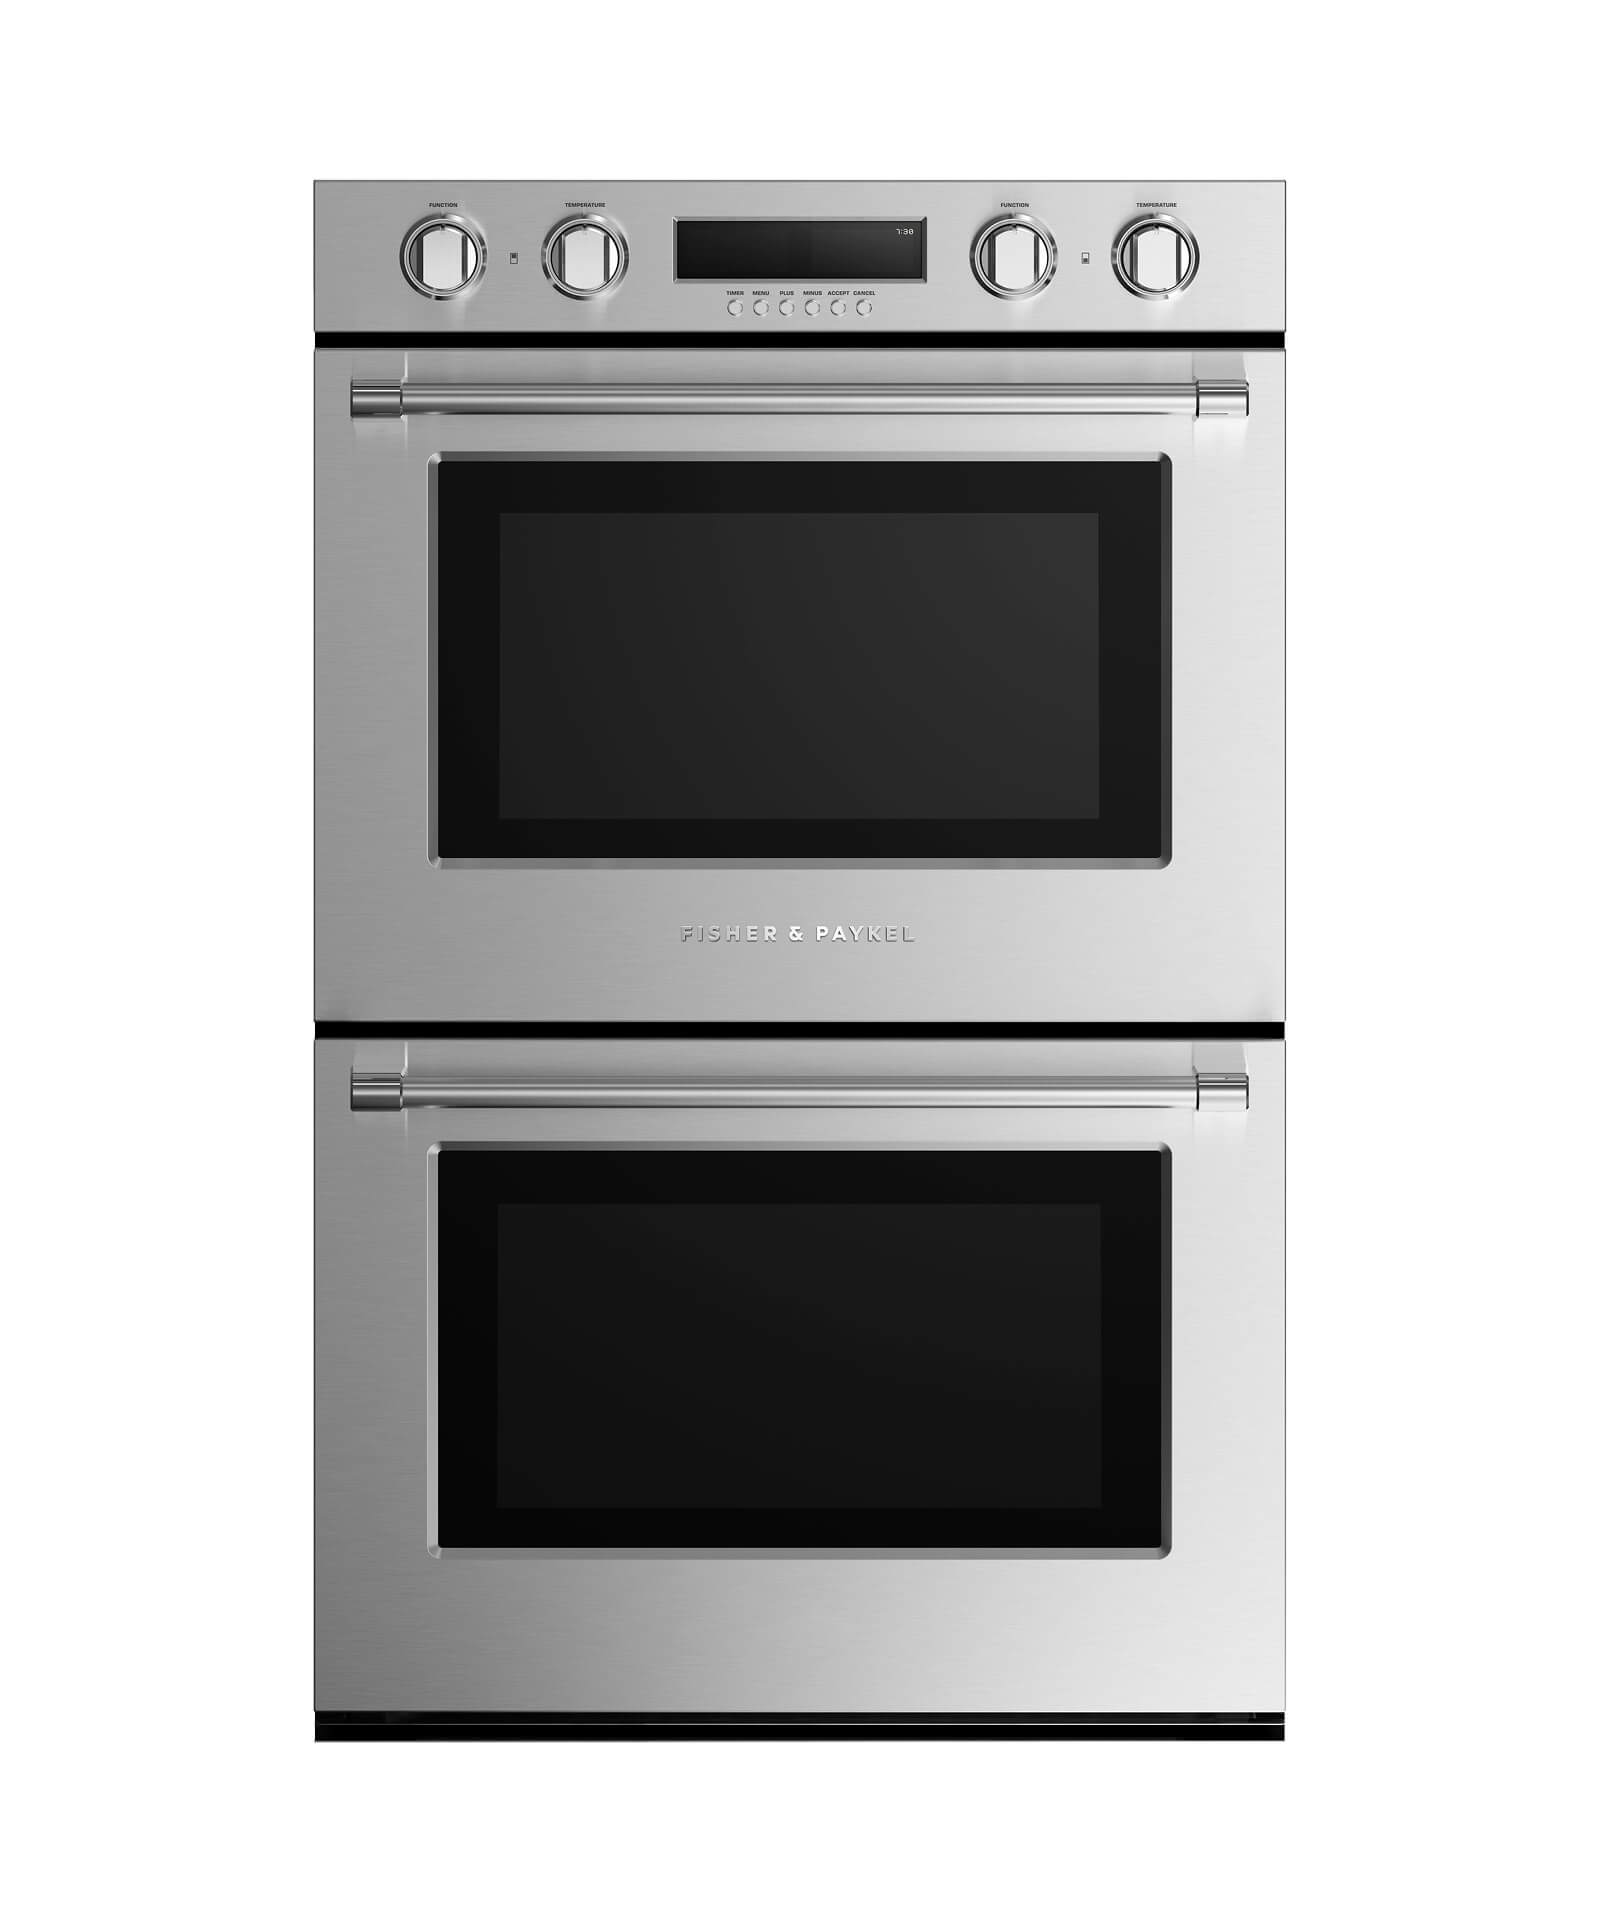 "Fisher and Paykel Double Built-in Oven 30"" 8.2 cu ft, 10 Functions"